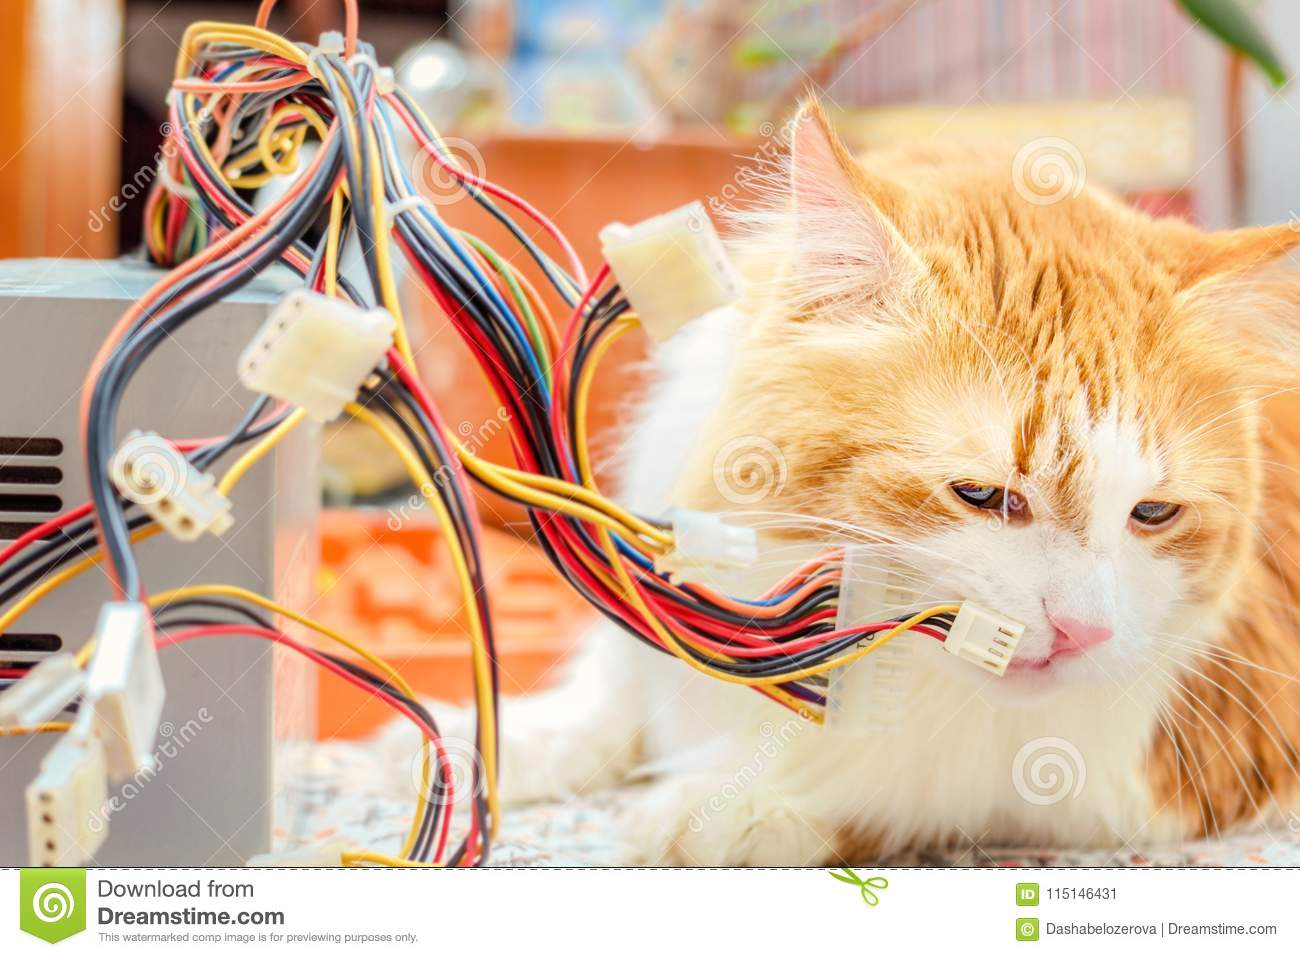 Adult Red Cat And Computer Wires Stock Image - Image of electronic ...